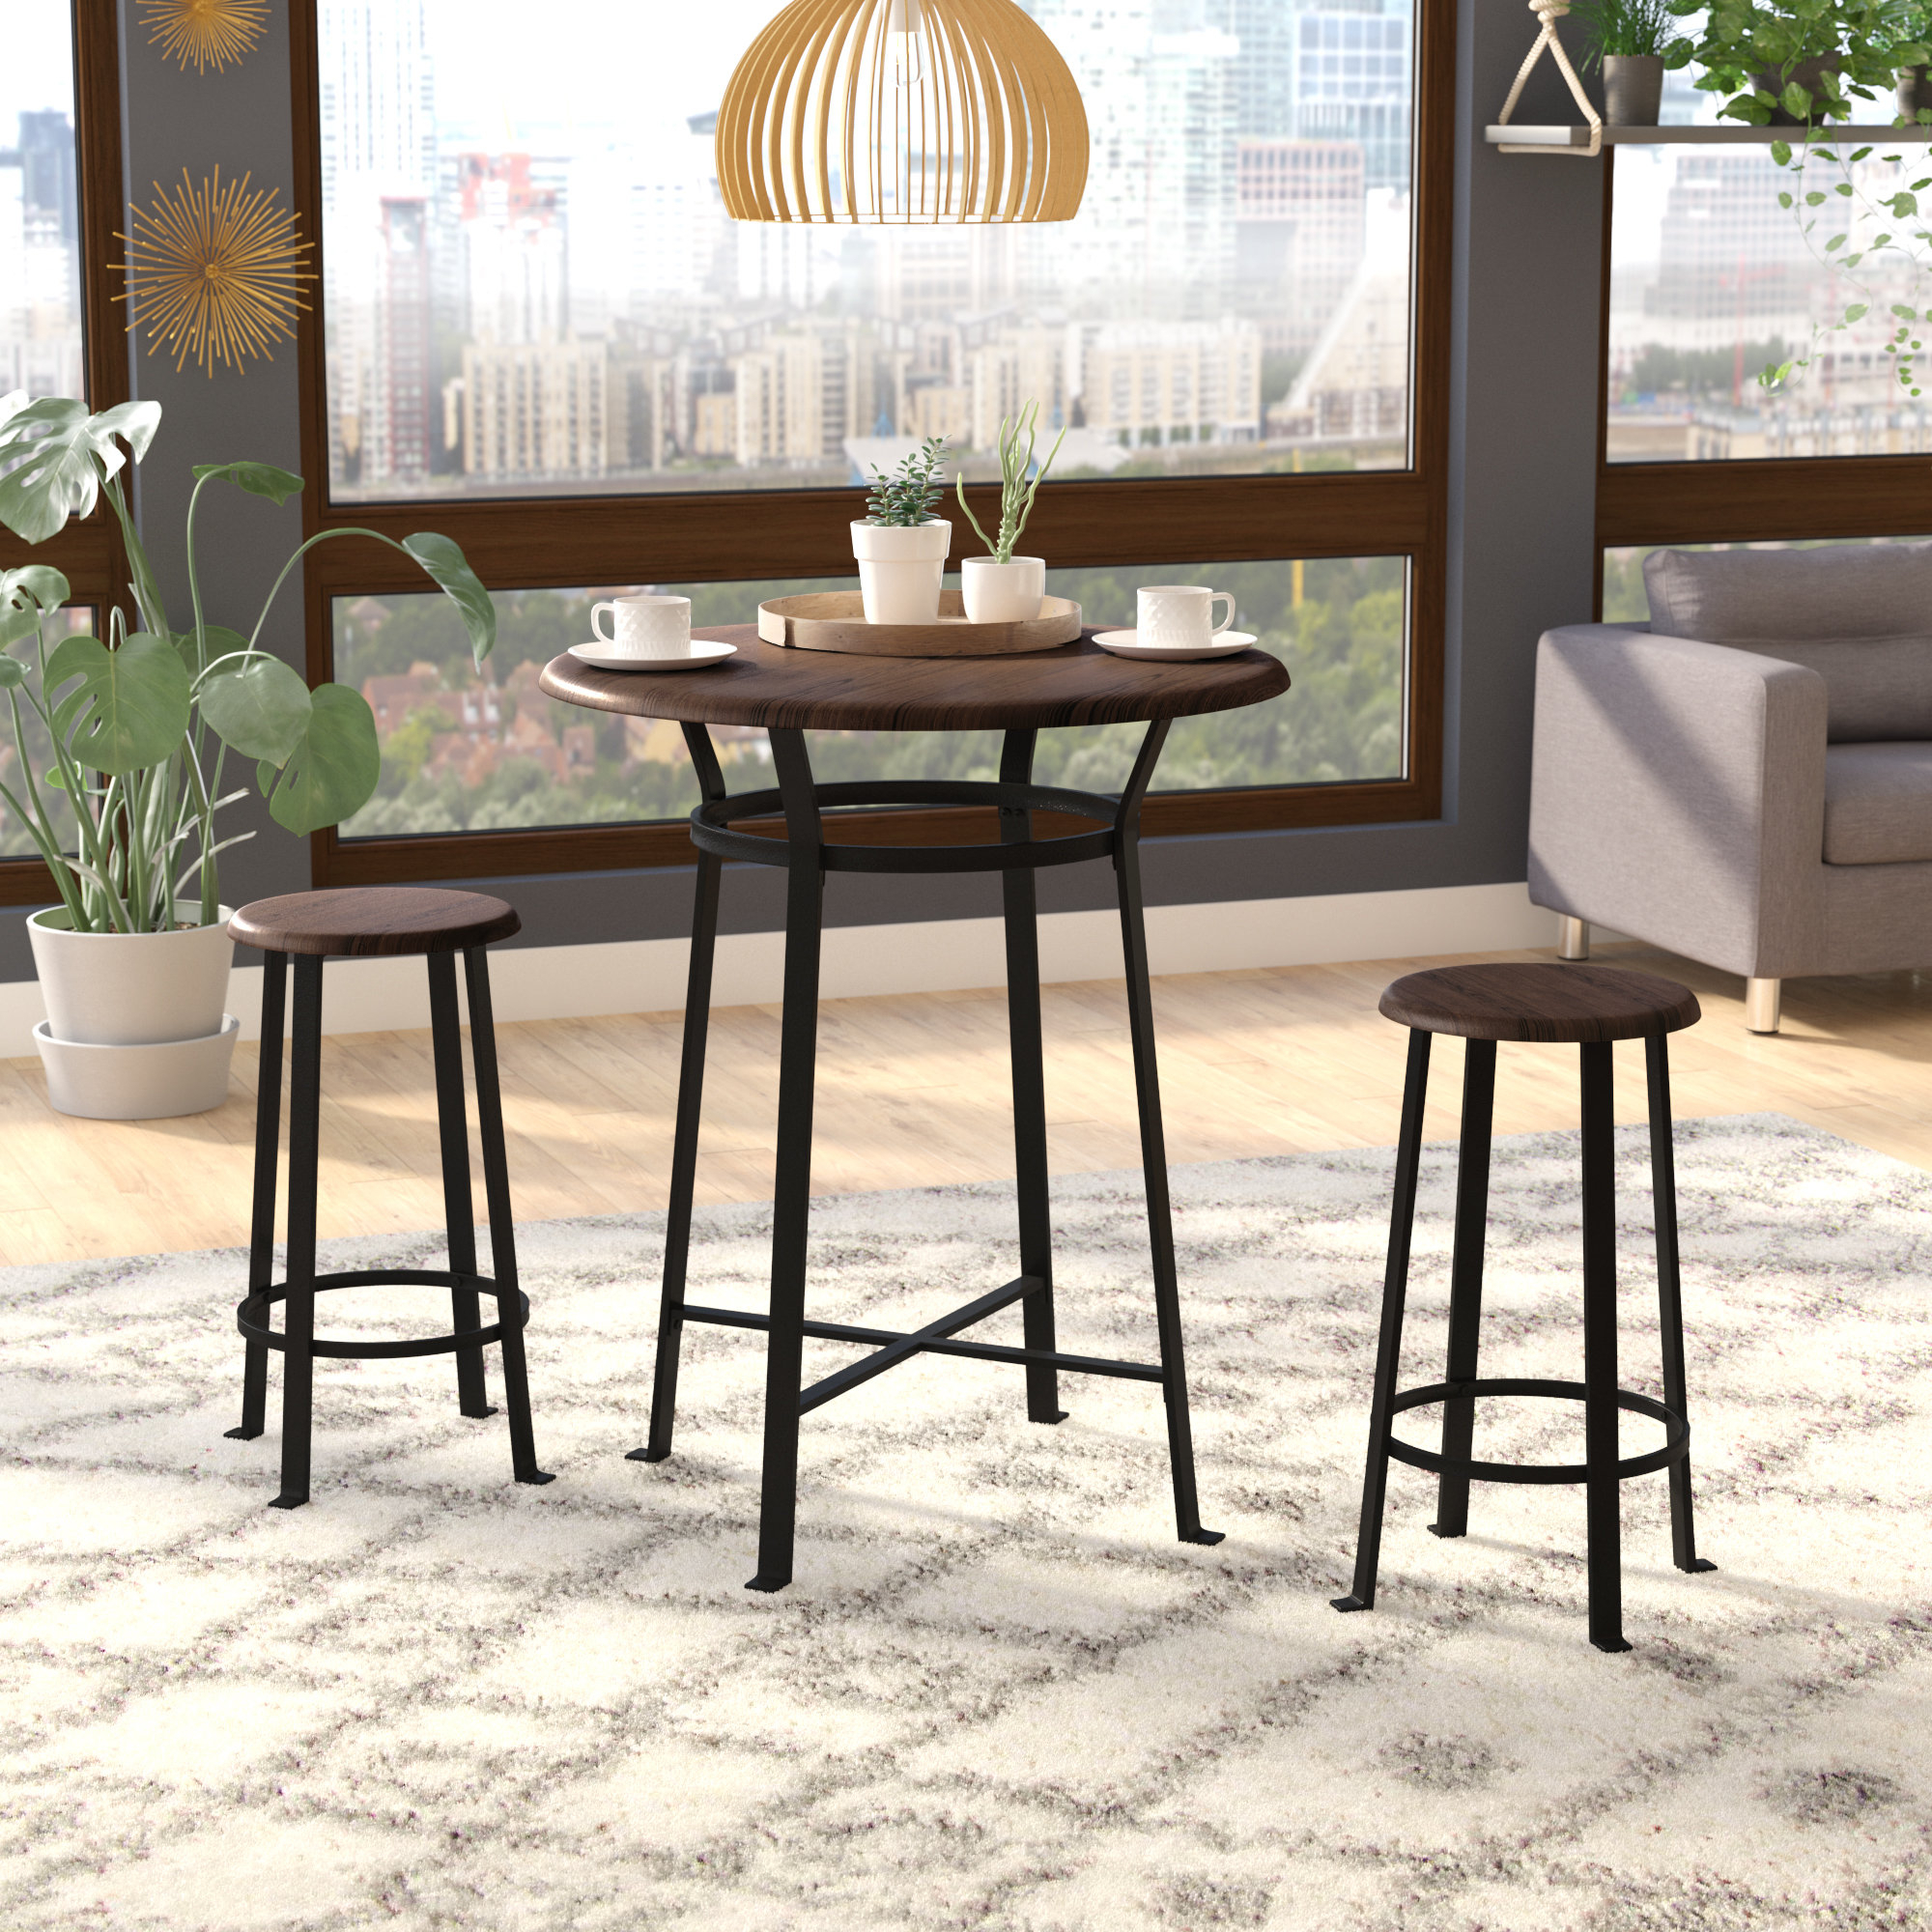 Hood Canal 3 Piece Dining Sets Pertaining To 2019 Ebern Designs Grandview 3 Piece Solid Wood Dining Set & Reviews (View 11 of 25)